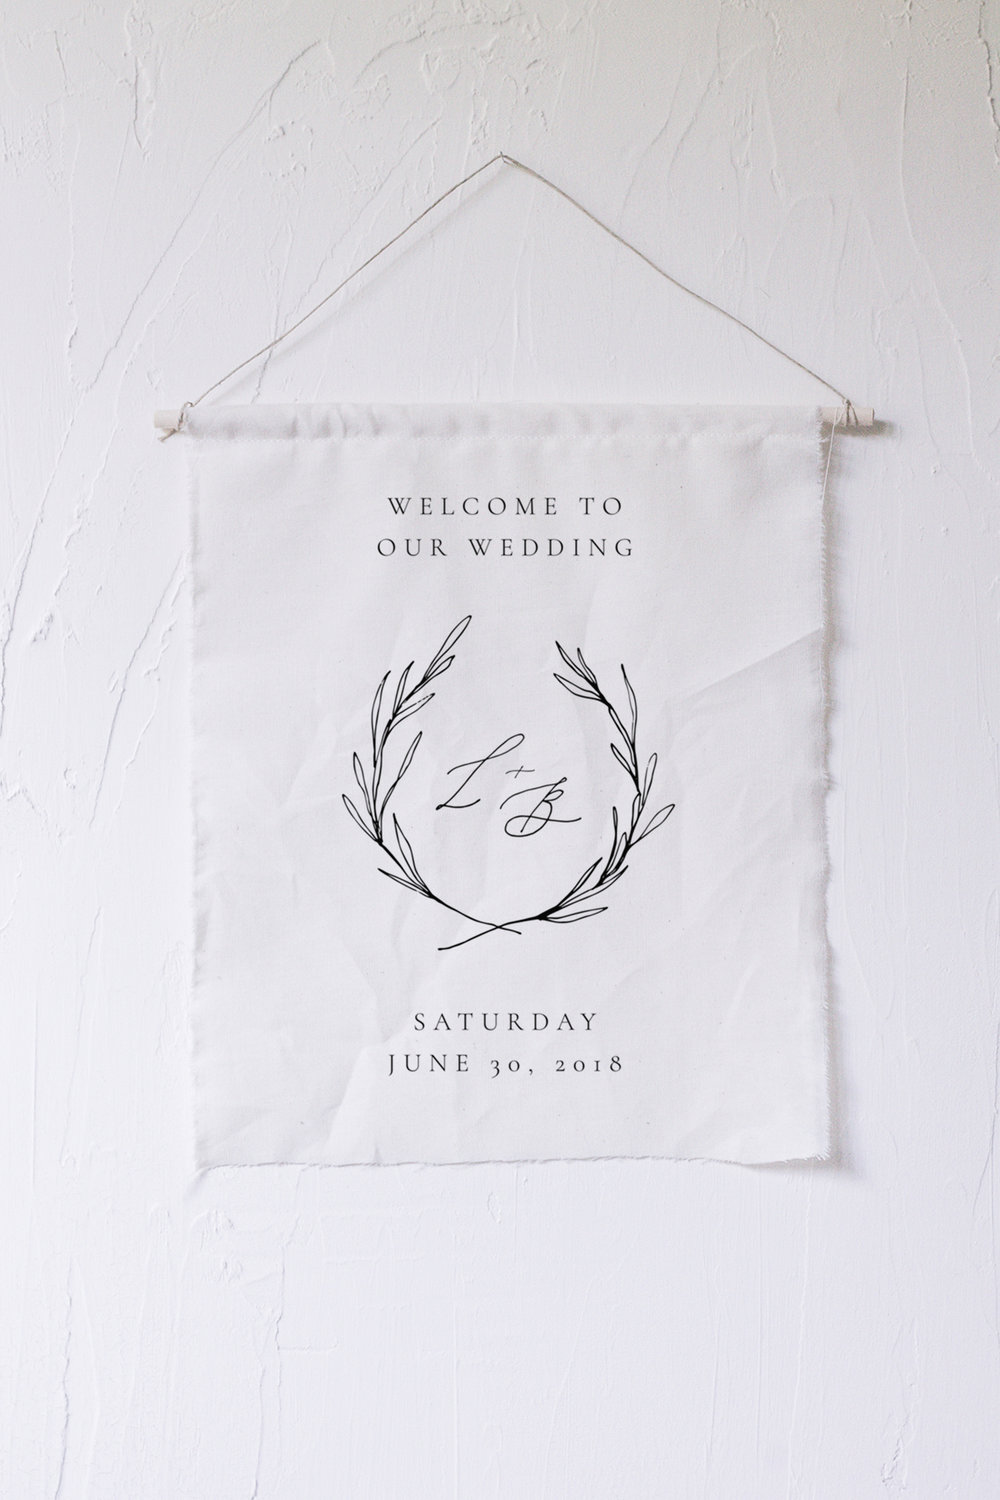 Wedding welcome sign ideas #thehandlettershop